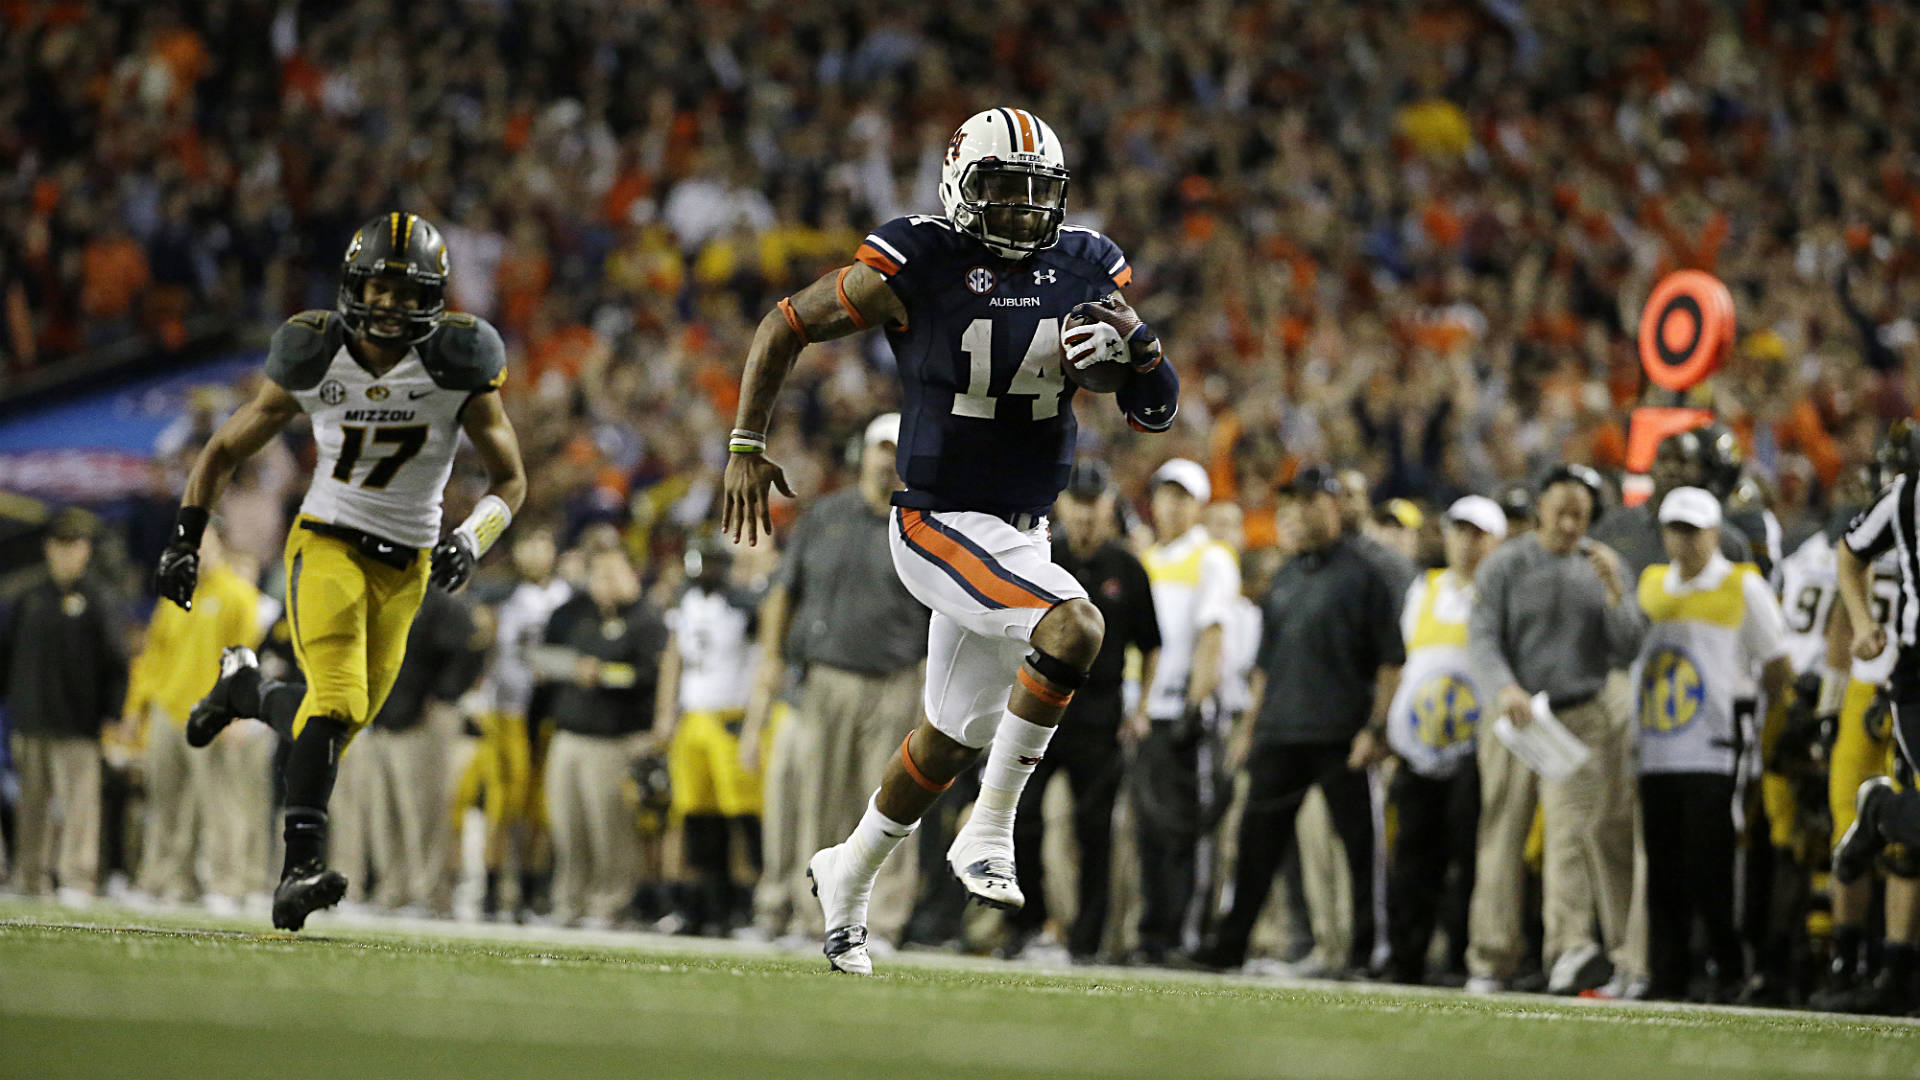 Nick-Marshall-FTR-060414-AP